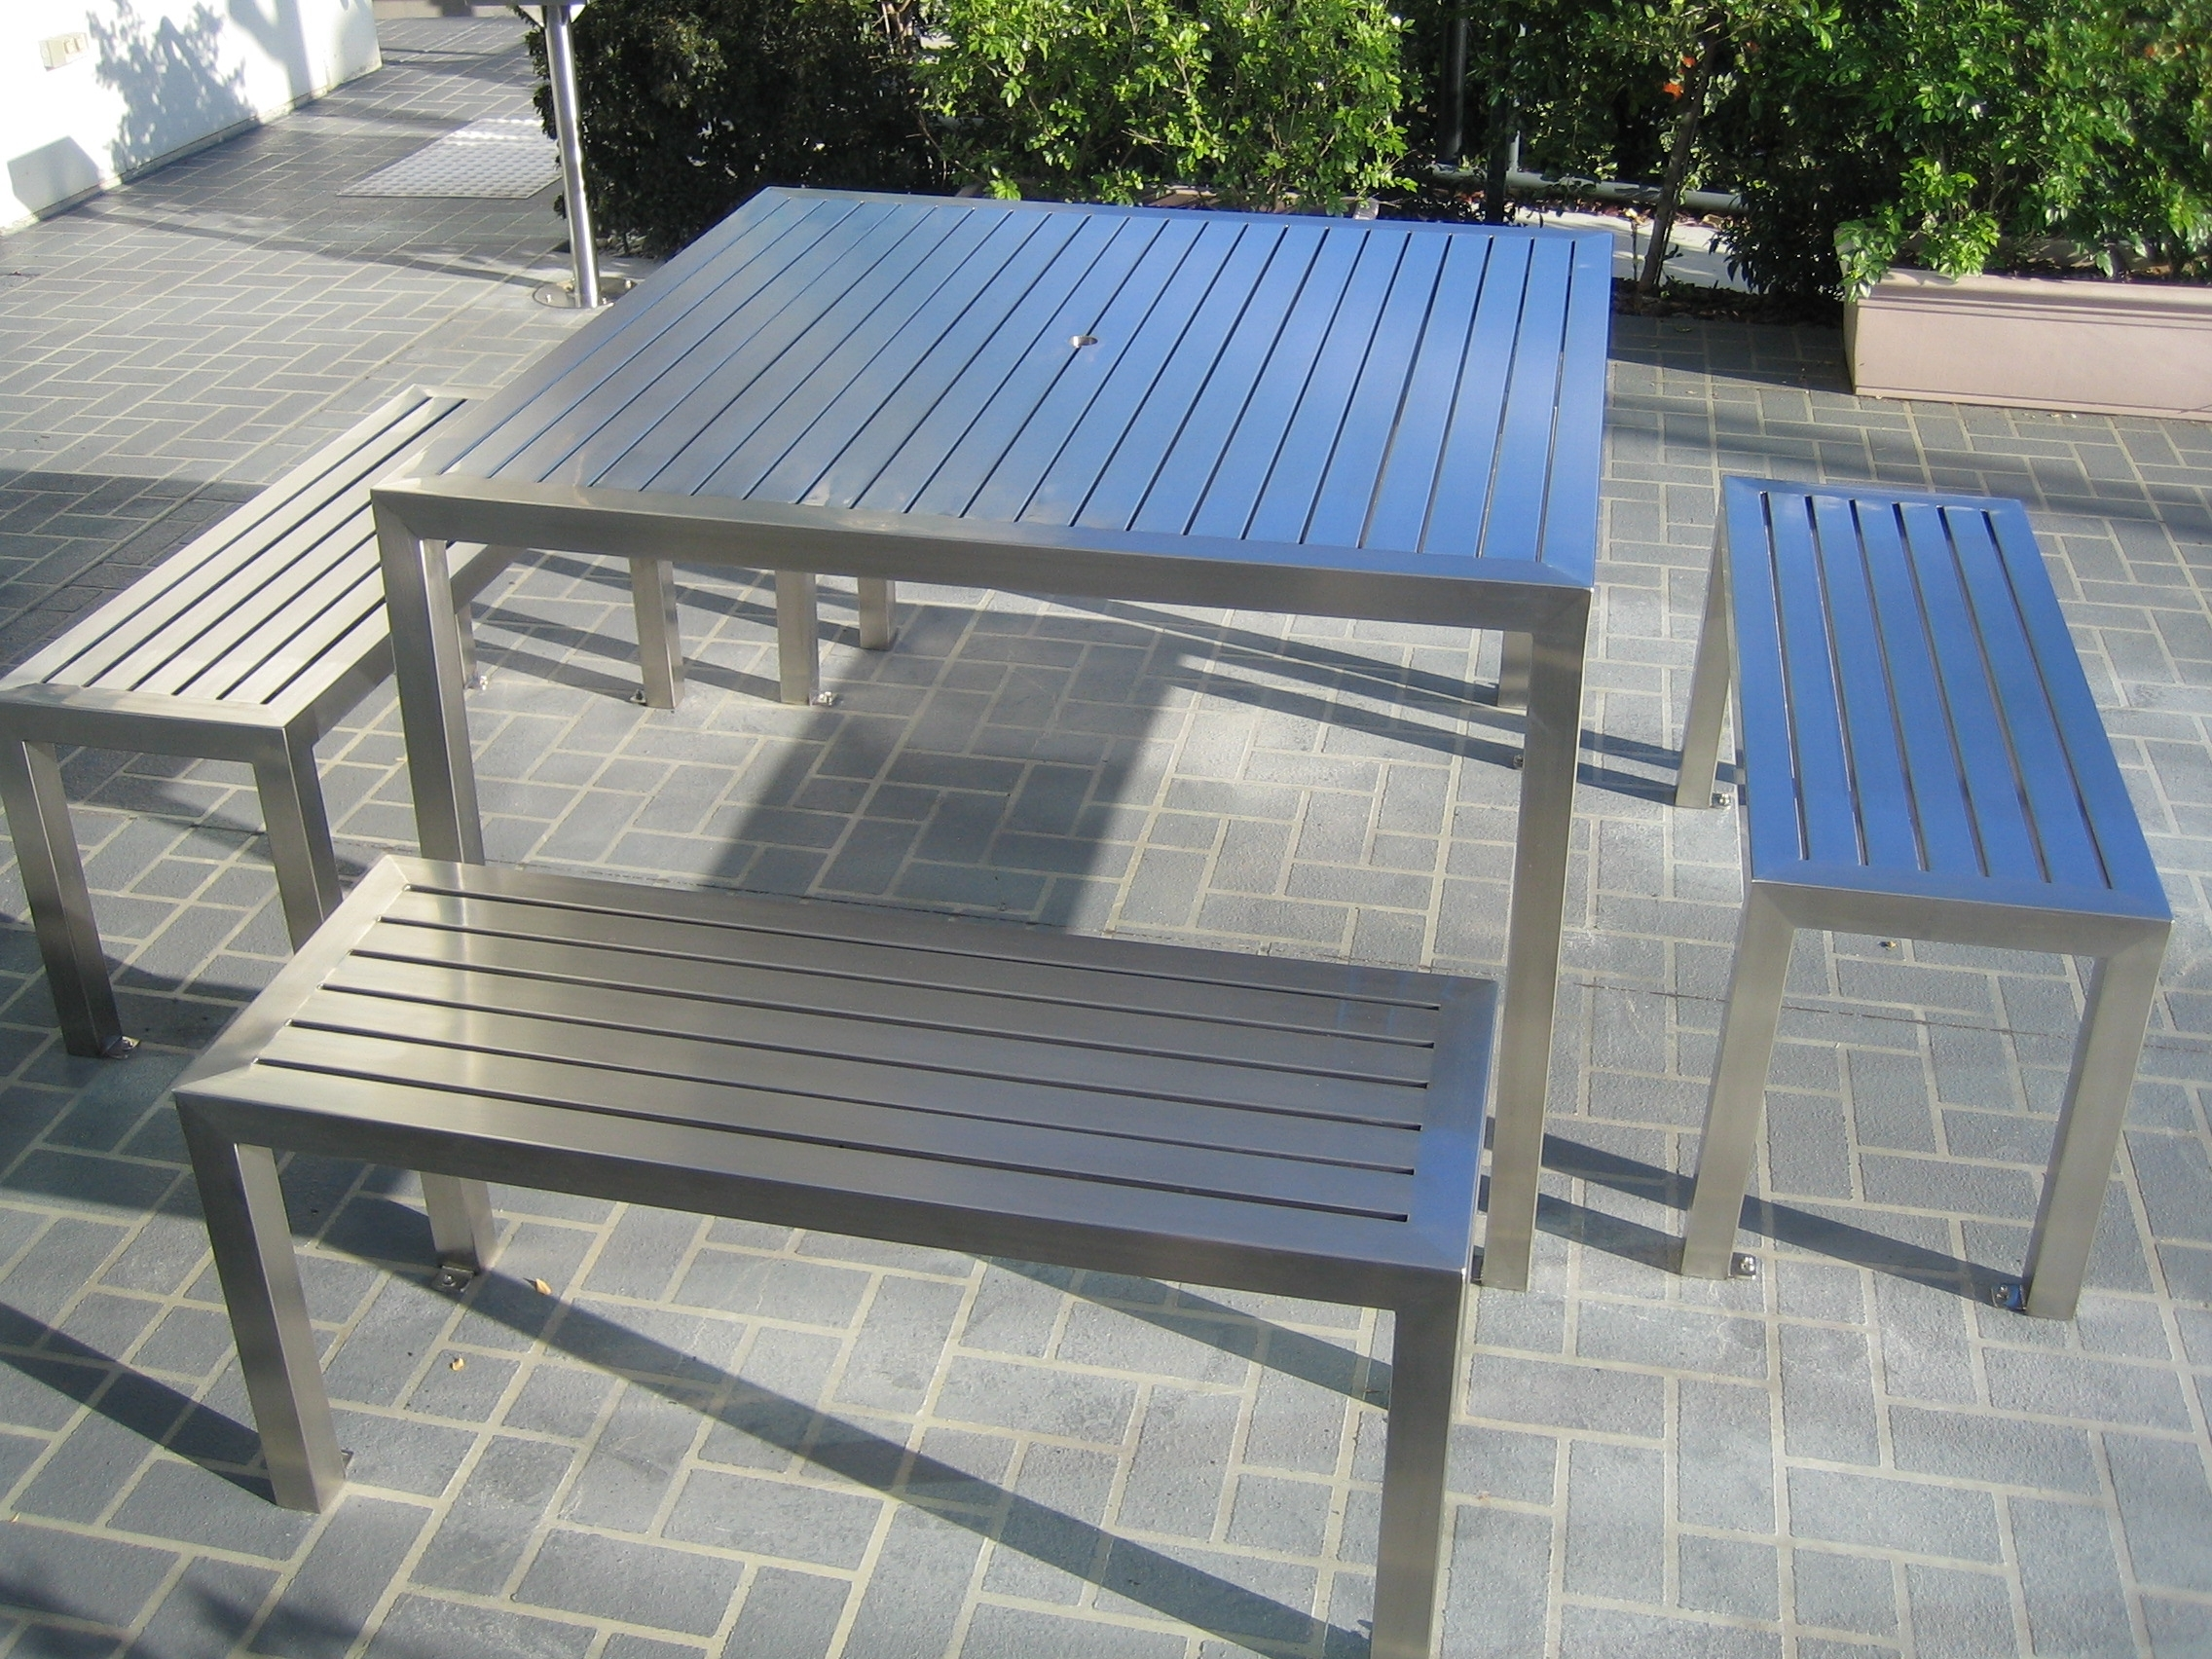 Image of: Blog Genix Steel Fabrication And Construction Throughout Outdoor Stainless Steel Furniture Great Outdoor Stainless Steel Furniture